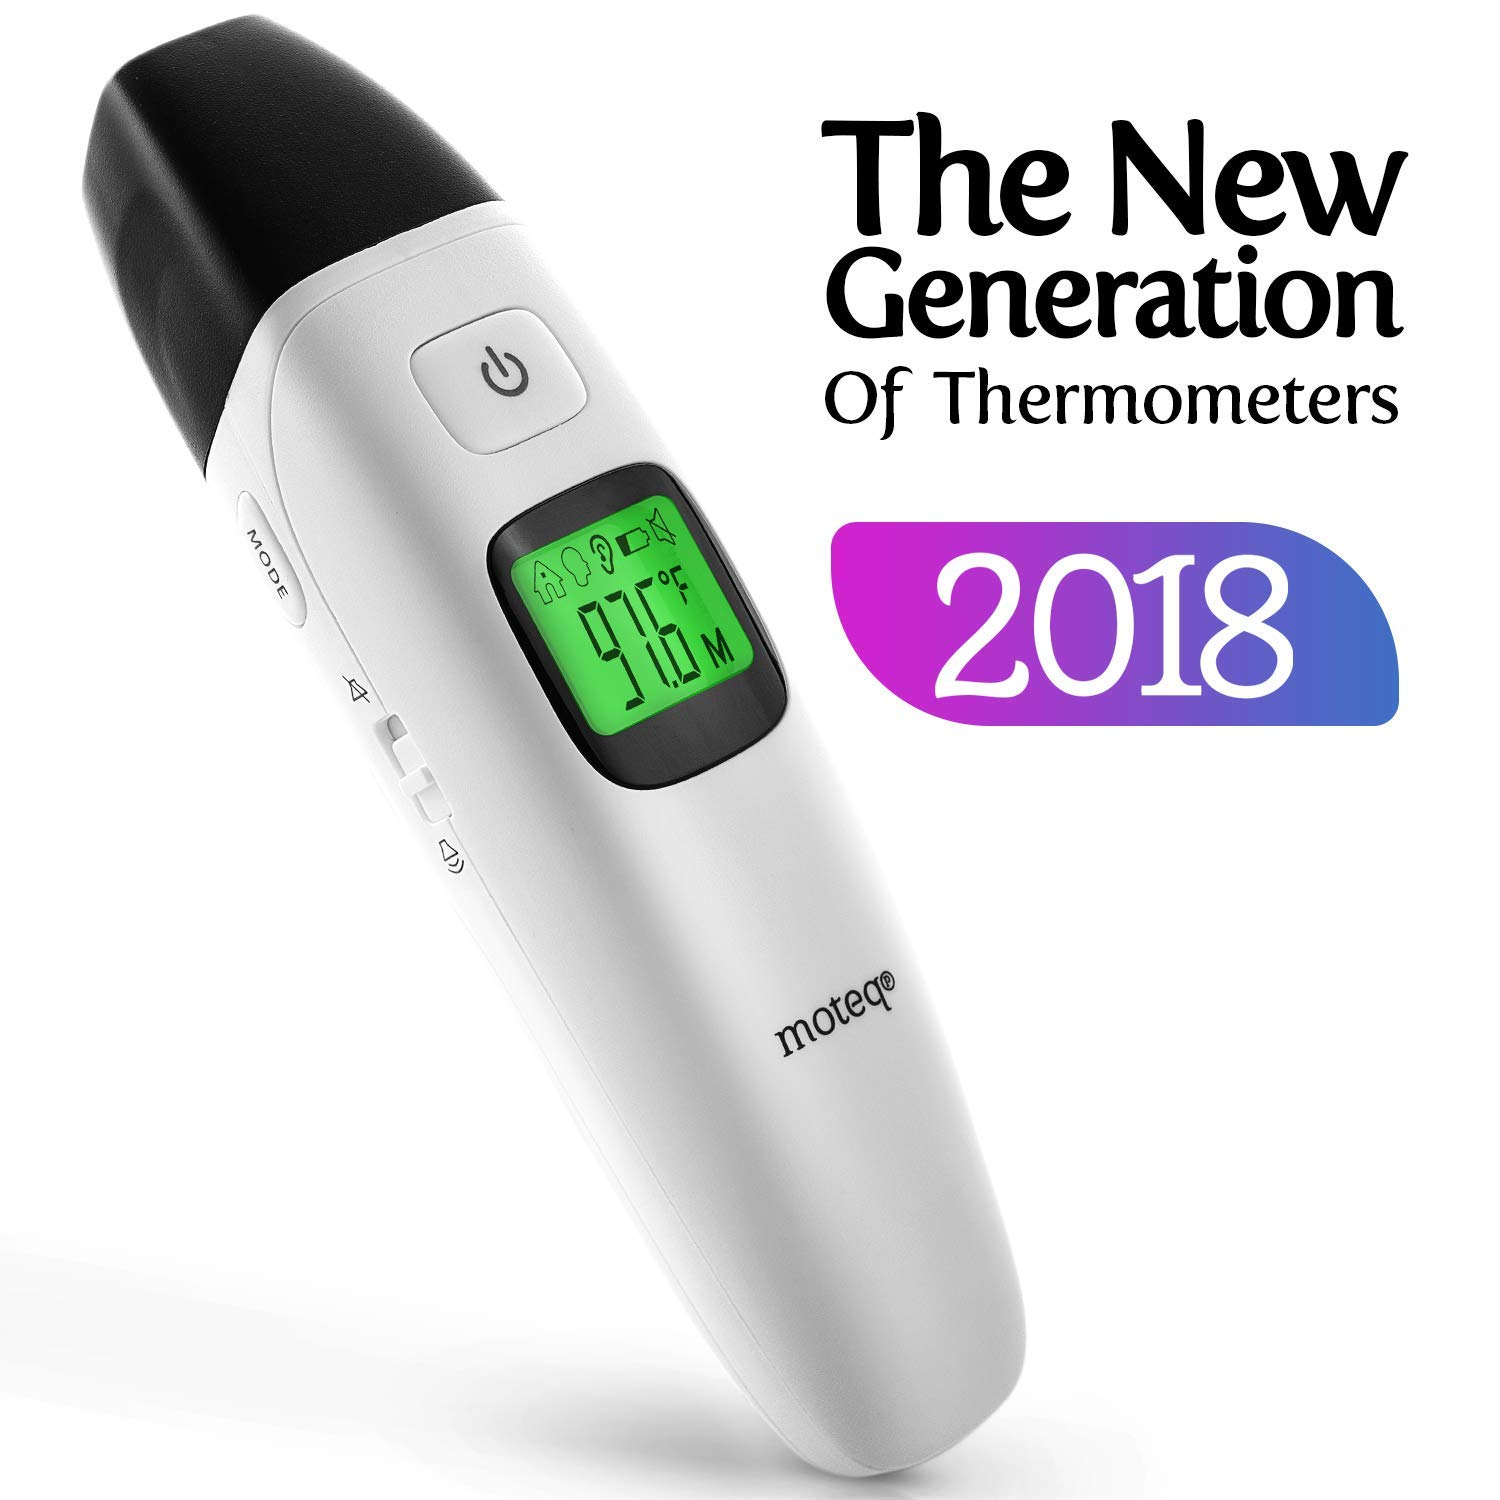 Baby Thermometer Infrared - [Upgrade 2018] 5-in-1 Ear - Forehead/Object / Liquids/Room- Fever Alarm - Instant Reading- Accurate - Baby/Gentile - Hygienic - Medically Proven CE/FDA JPD-FR408